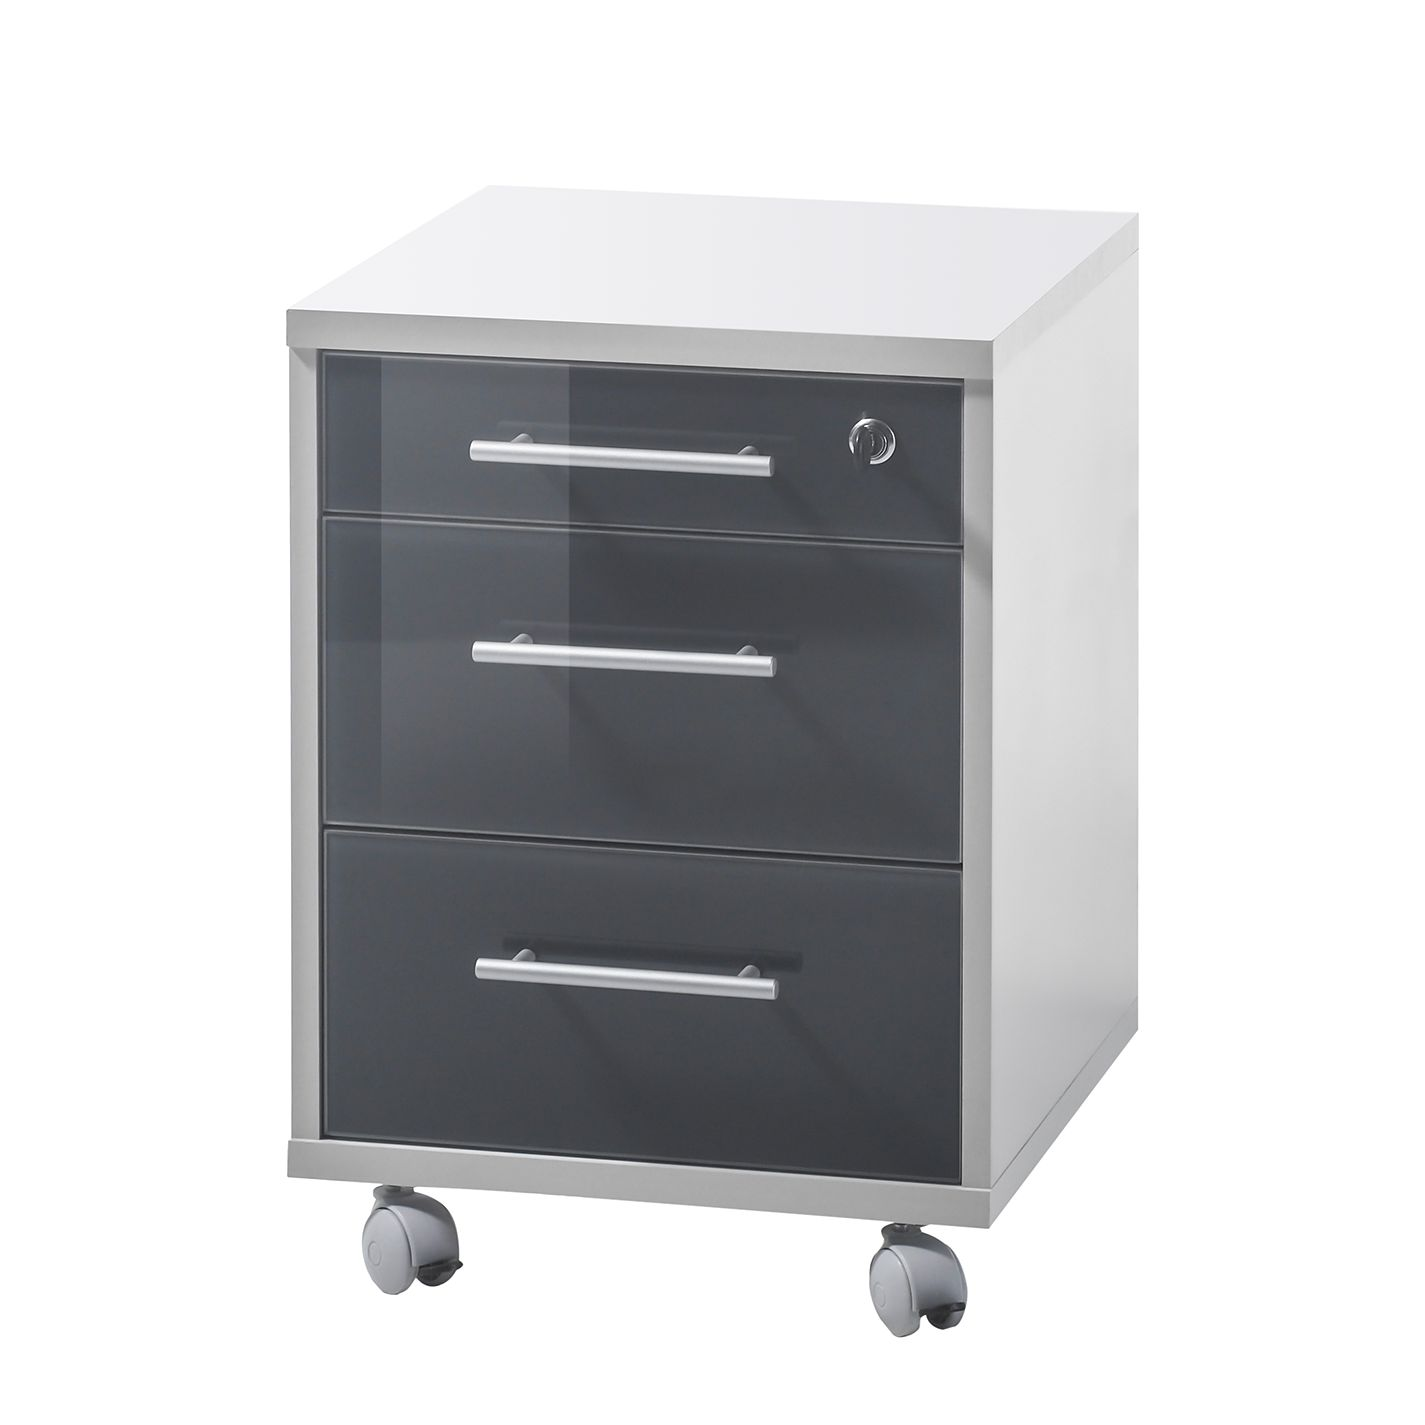 Rollcontainer Grau Home24 Rollcontainer Tux